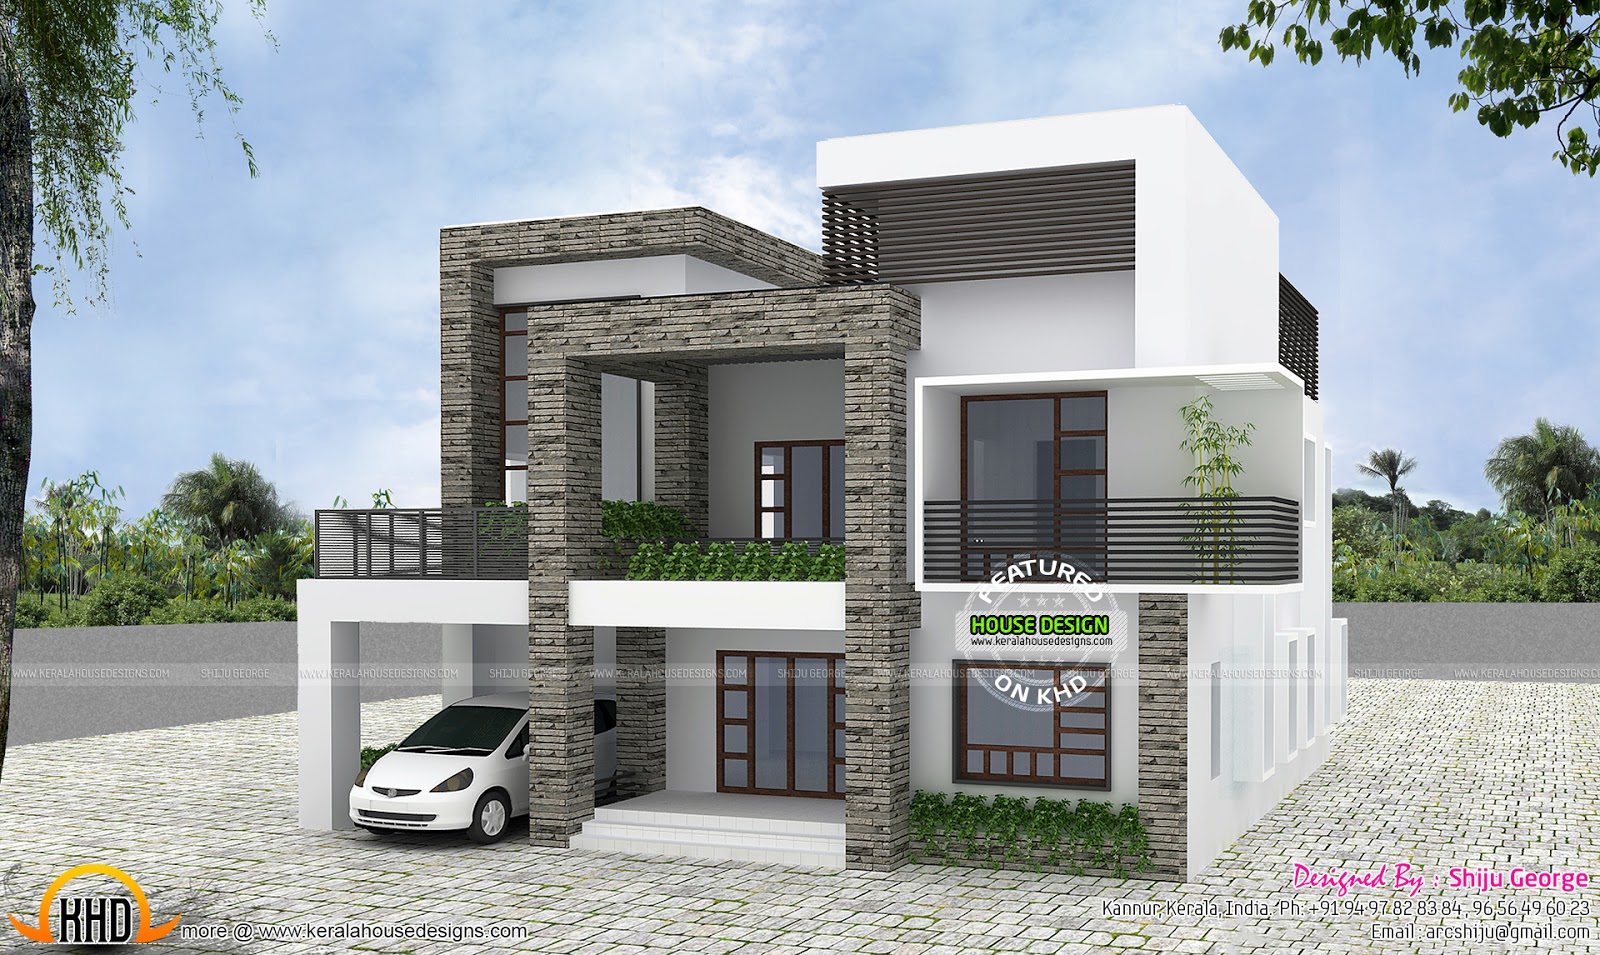 Contemporary house by shiju george home design simple for Contemporary model house